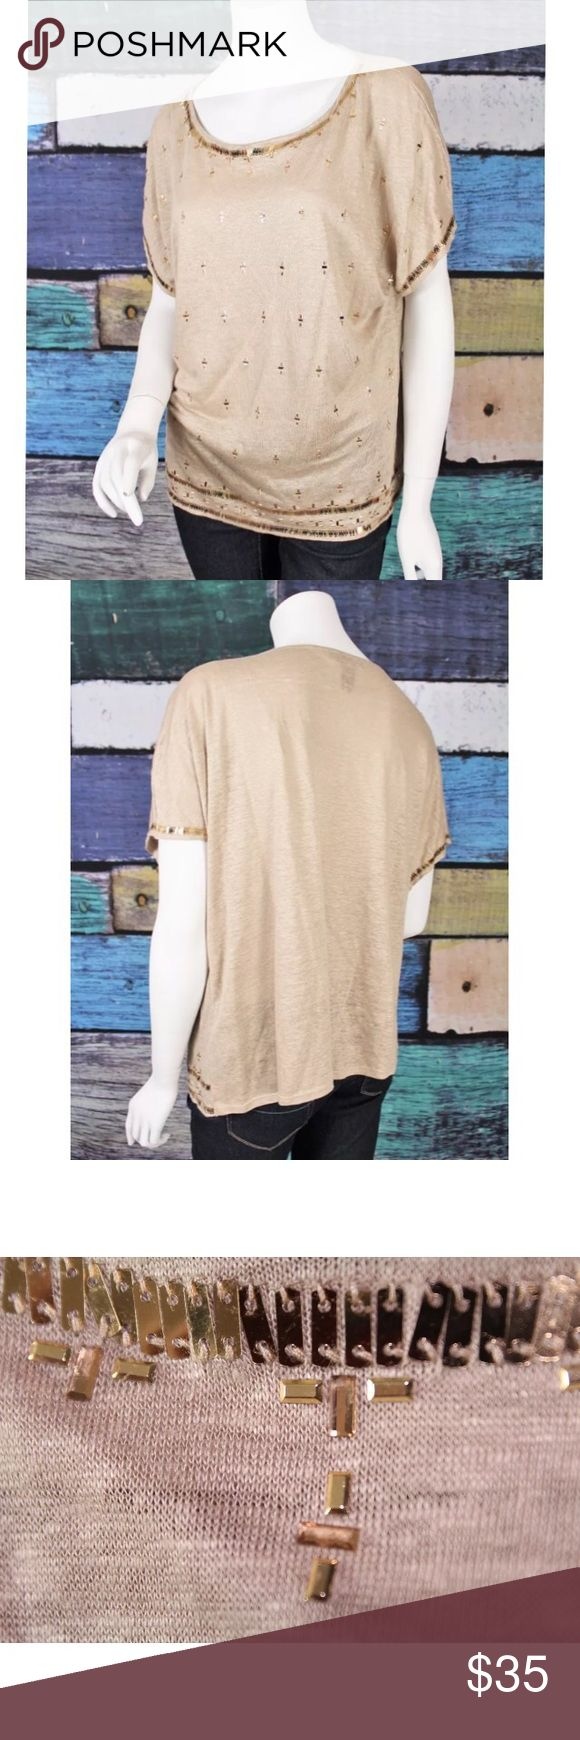 WHBM Tan Gold Linen Embellished Knit Top Large Brand: WHBM Color: Beige Size: Large  Linen Shirt Short Sleeves Pullover Style Embellished Detail *Pants Not Included*  Condition: Clean, gently used pre-owned condition. No holes or stains.   Measurements Length: 25 inches Chest: 46 inches  Sleeve Length: 10 inches Tops Blouses